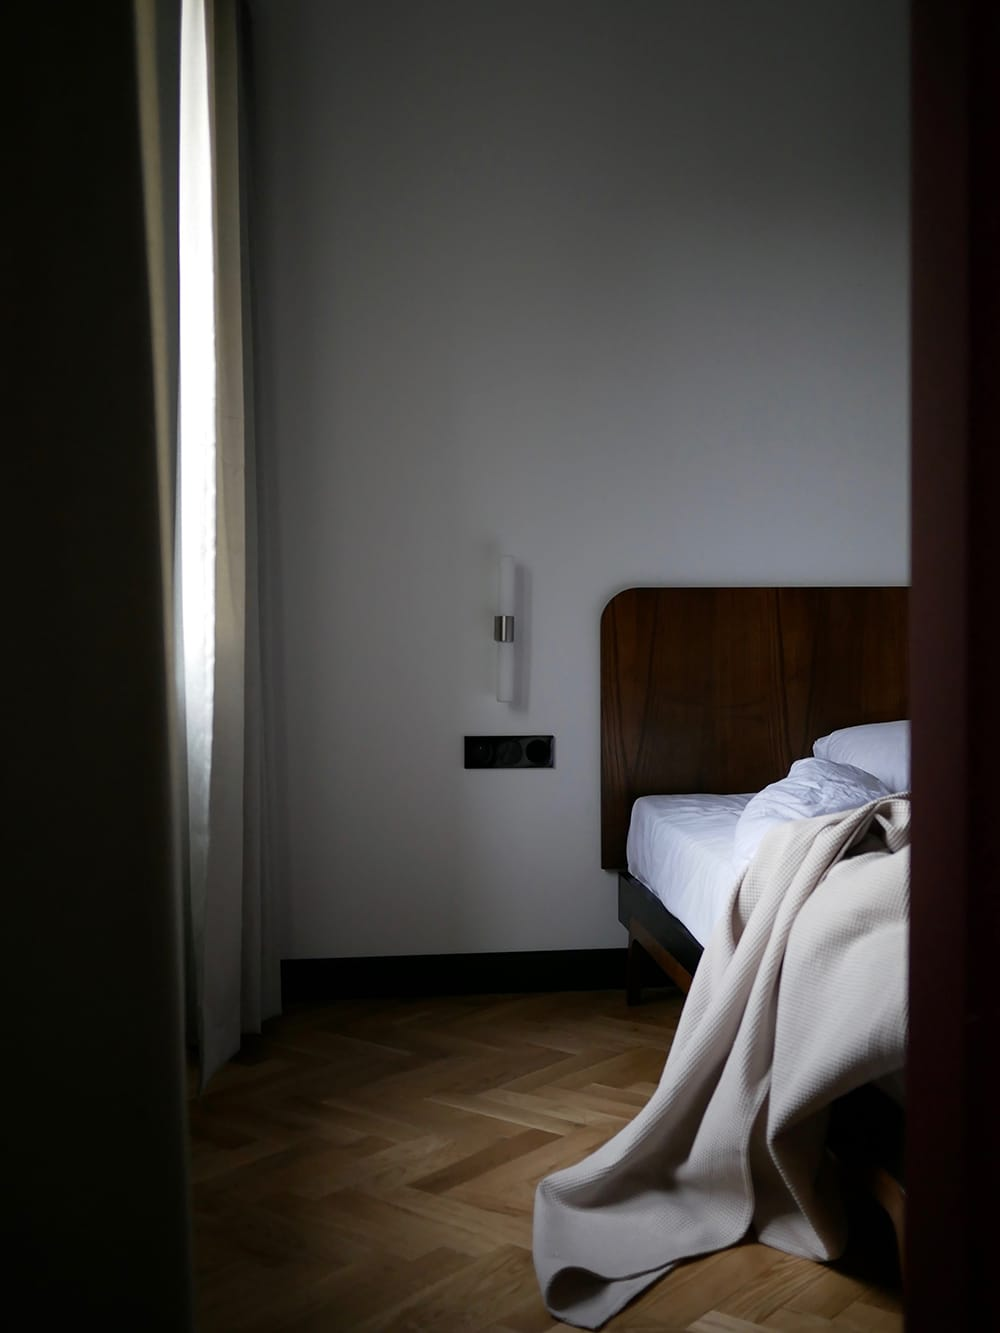 Interior of dark, shaded bedroom with unmade bed. Gdansk, Poland